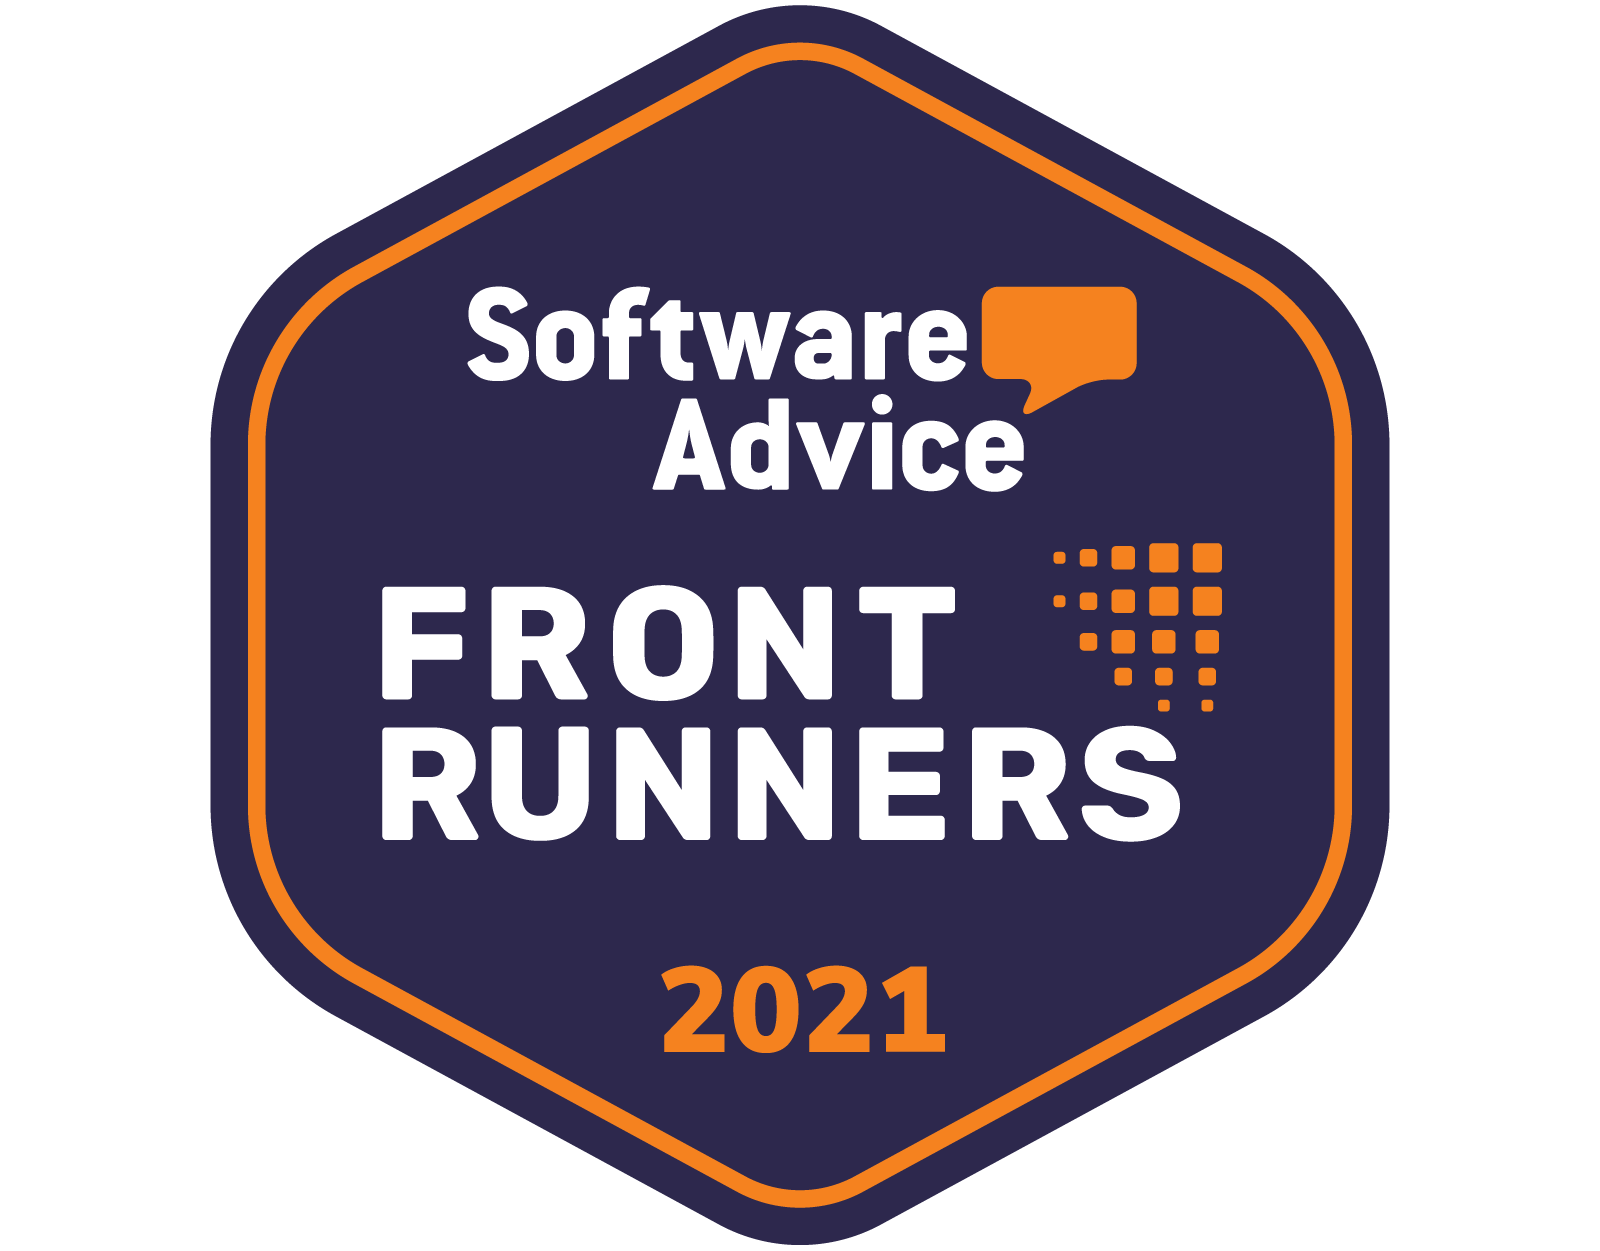 Software Advice Frontrunners for Email Marketing Jan-21